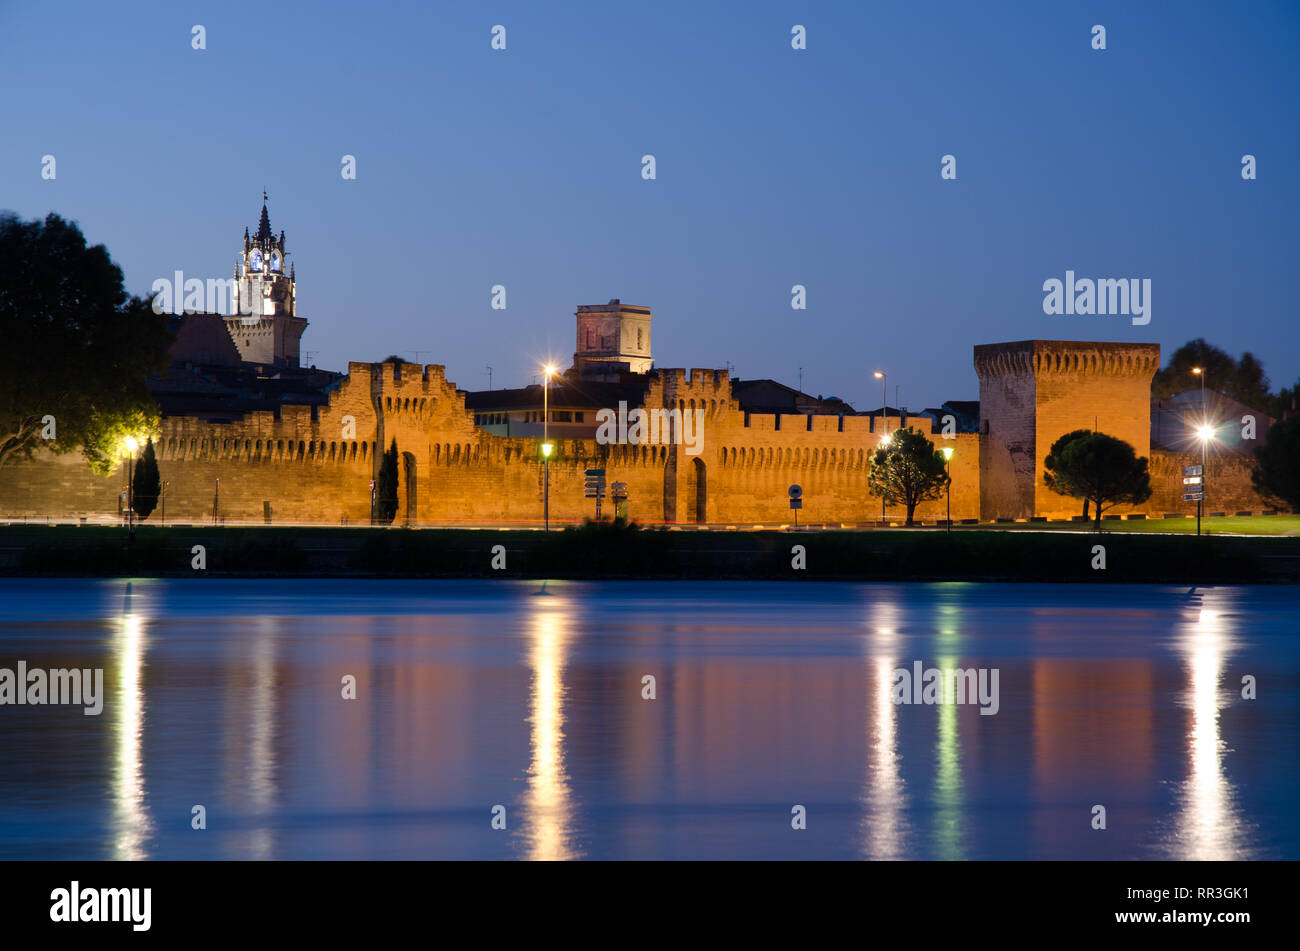 a view of the Pont d'Avignon or Benezet bridge and Palais des Papes of Avignon France - Stock Image